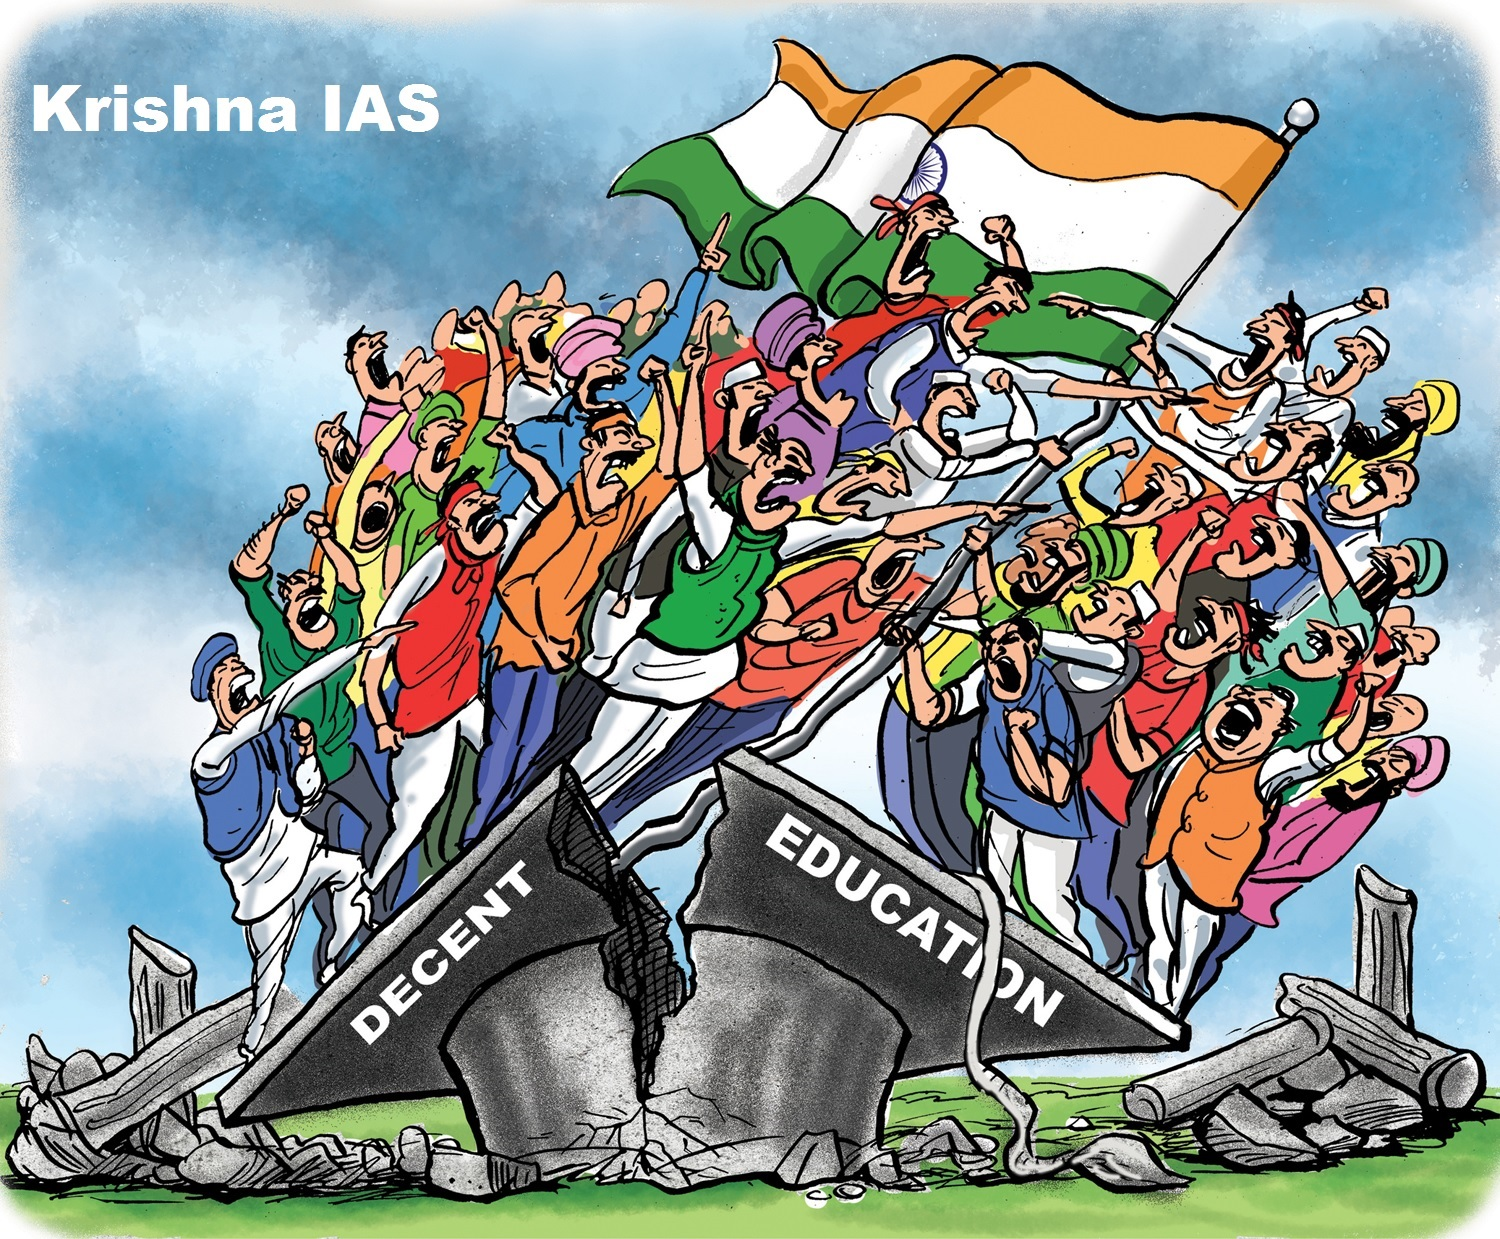 Best IAS Coachingin Chandigarh at Krishna IAS- 9988003622